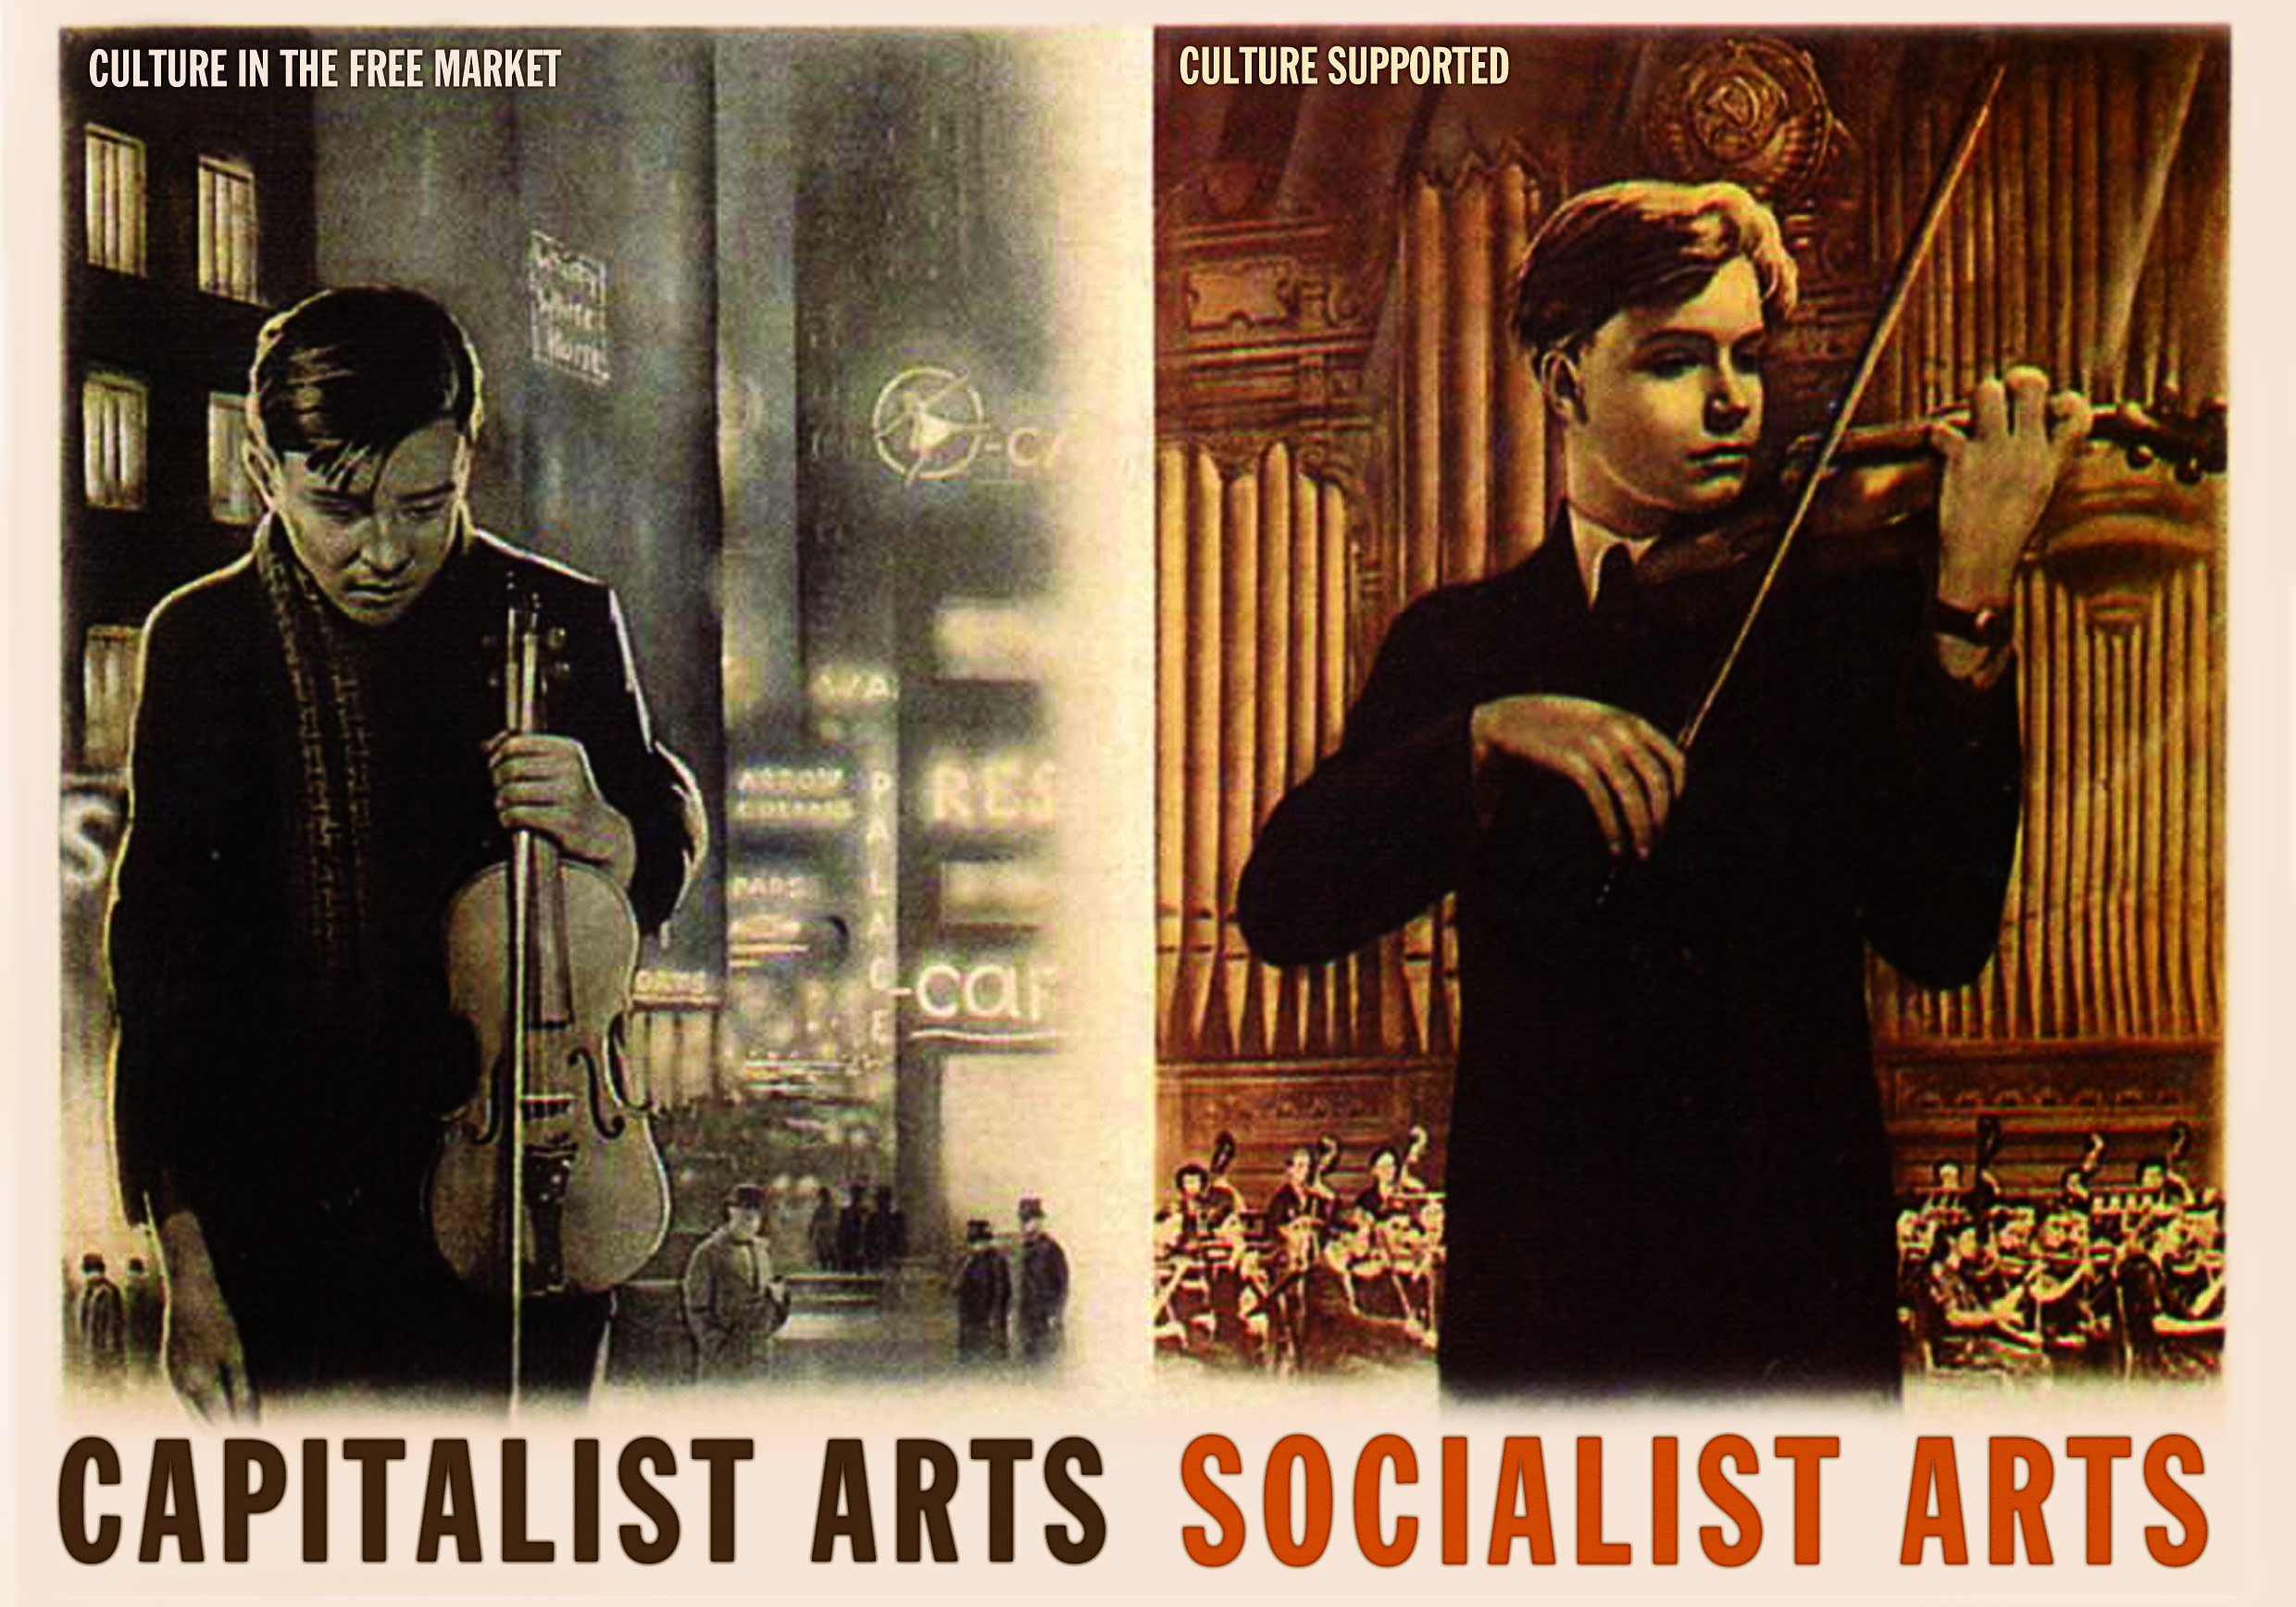 Capitalist vs Socialist Arts